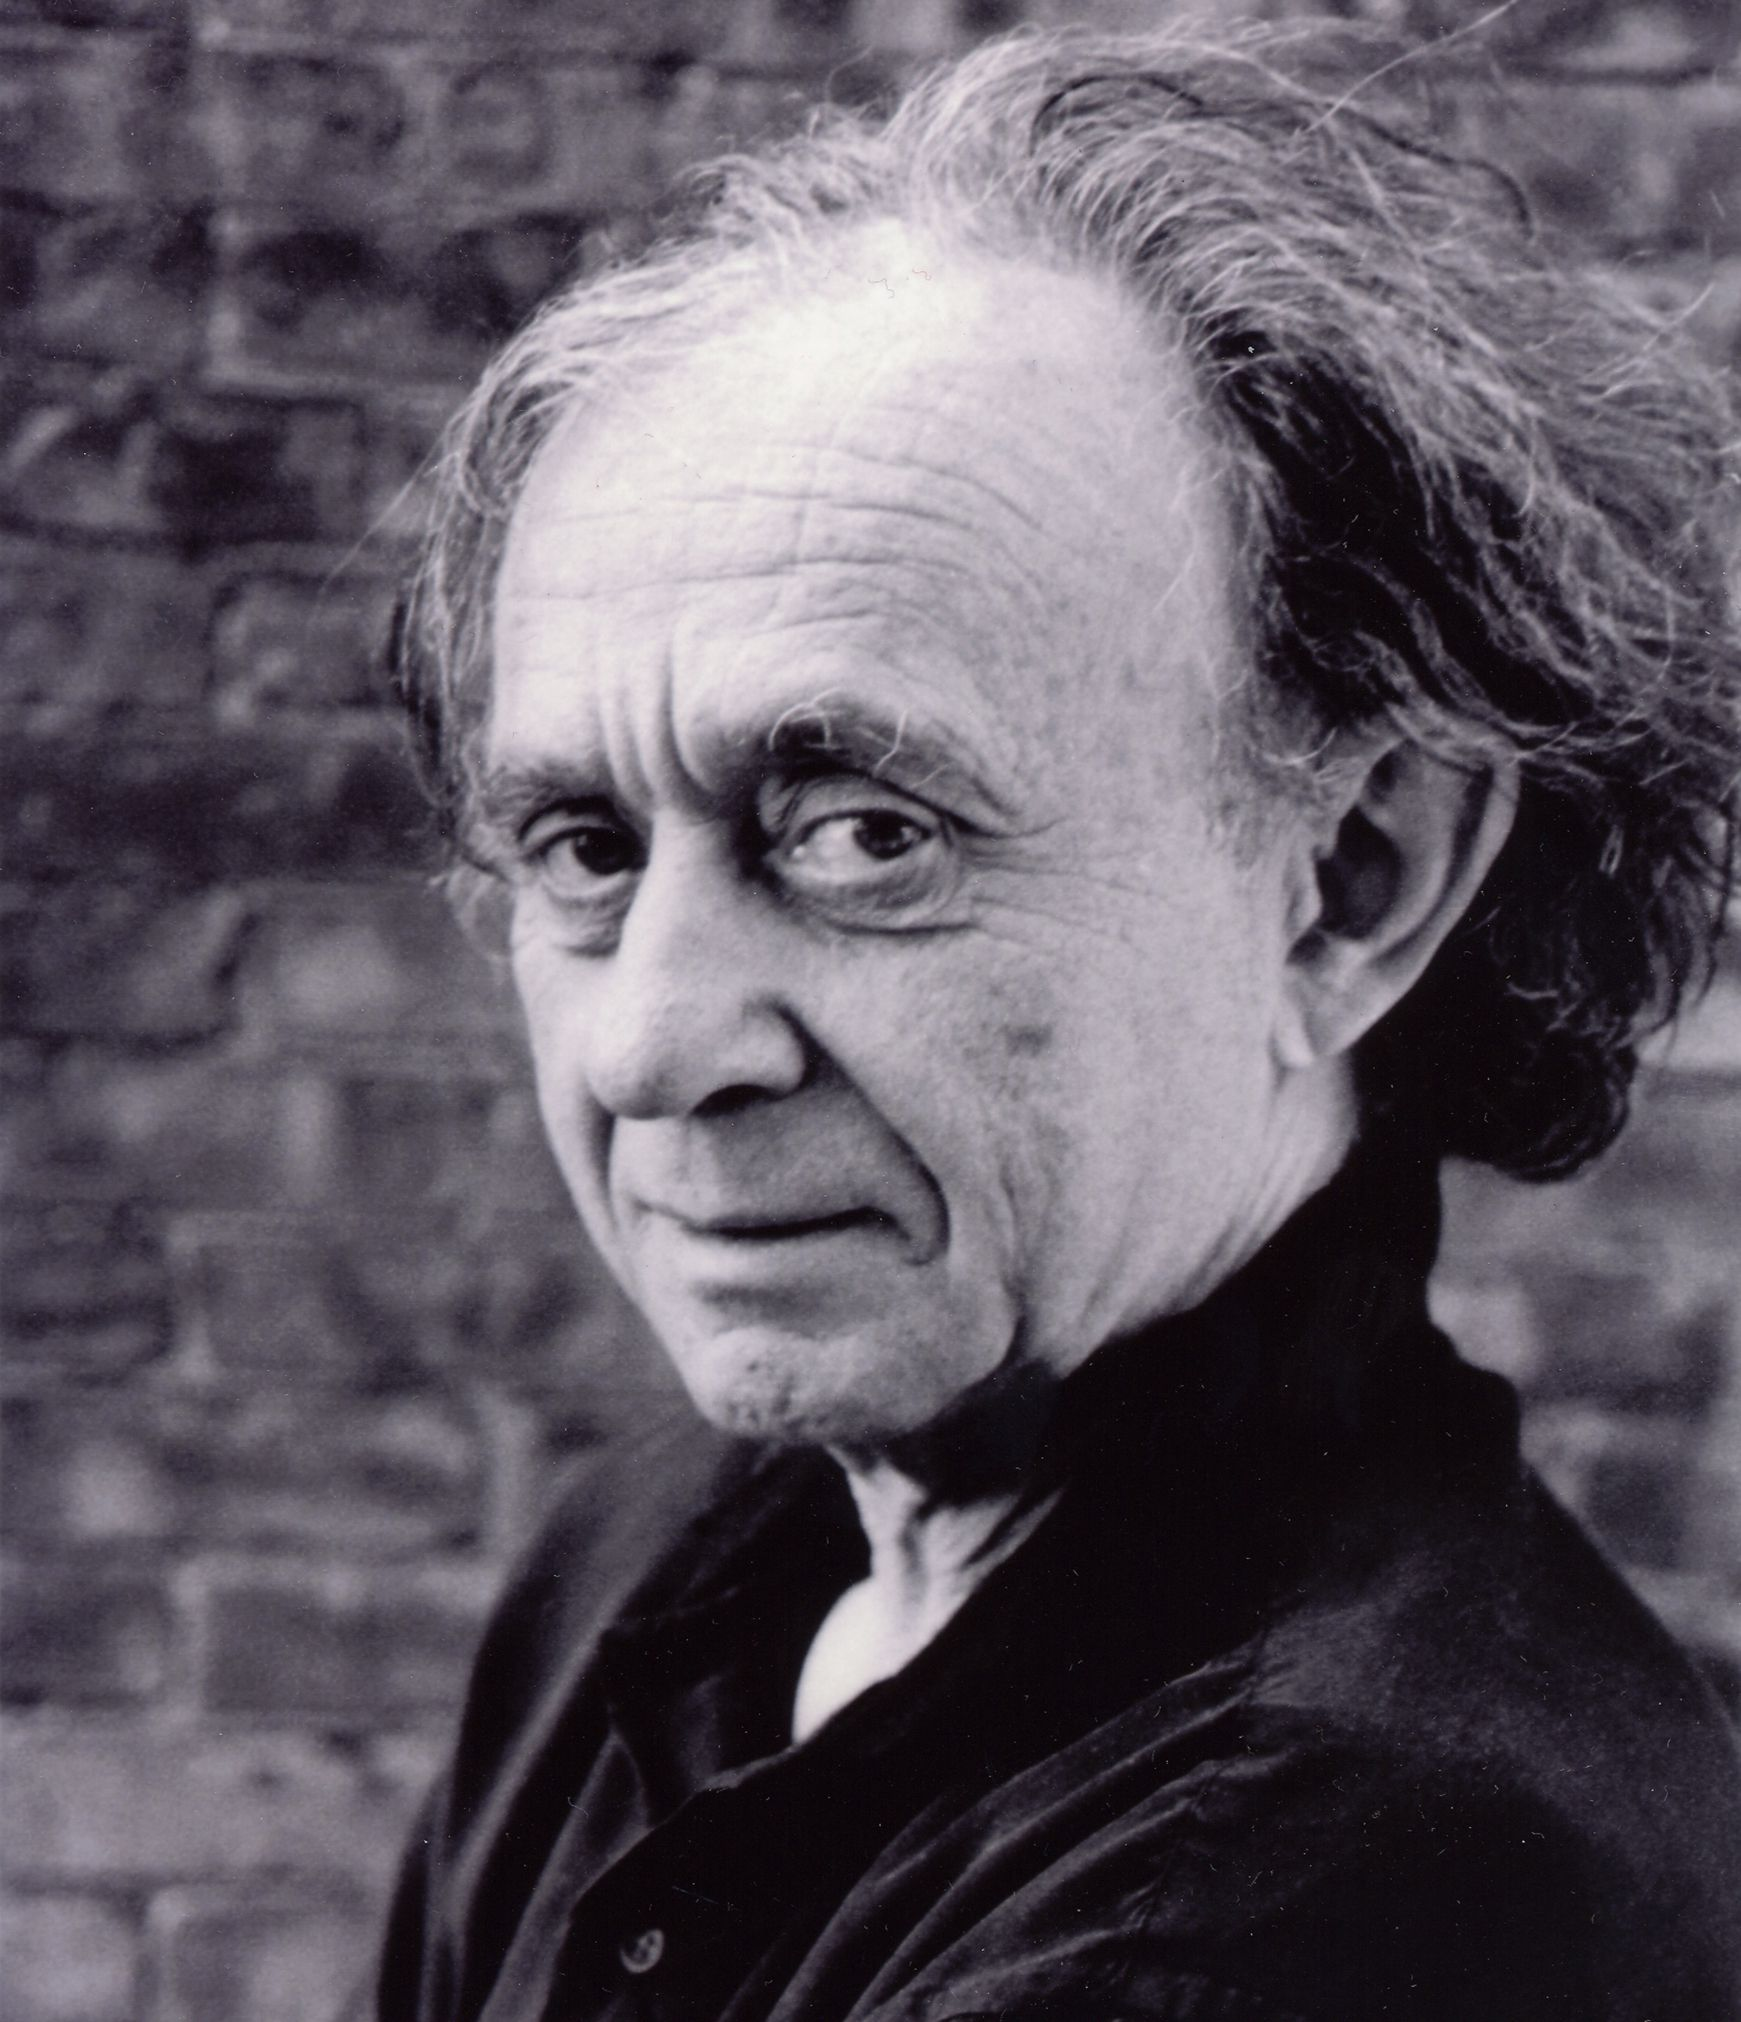 Interview: Frederick Wiseman